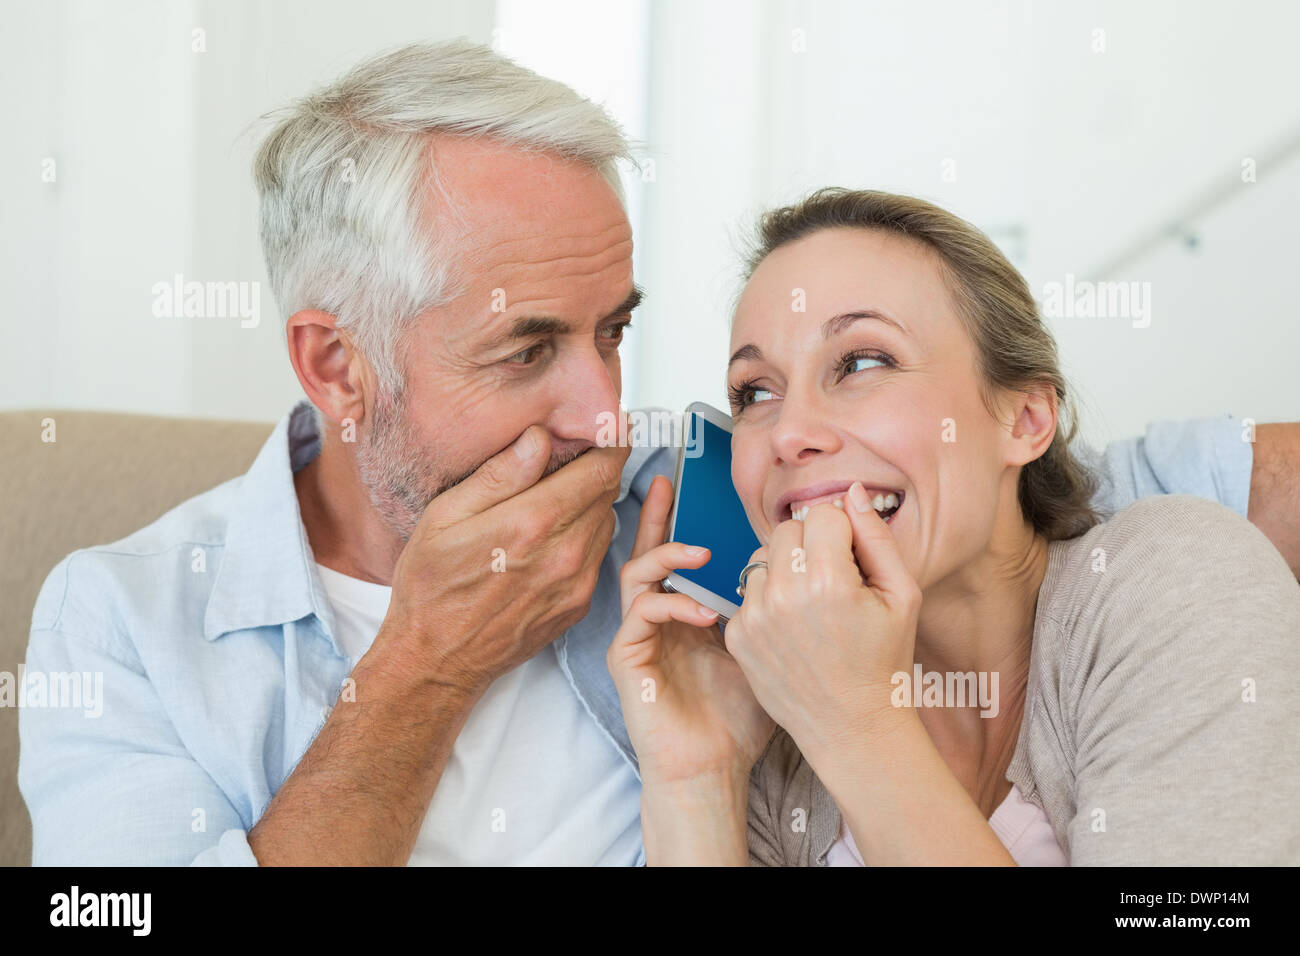 Happy couple listening to phone call together on the couch - Stock Image